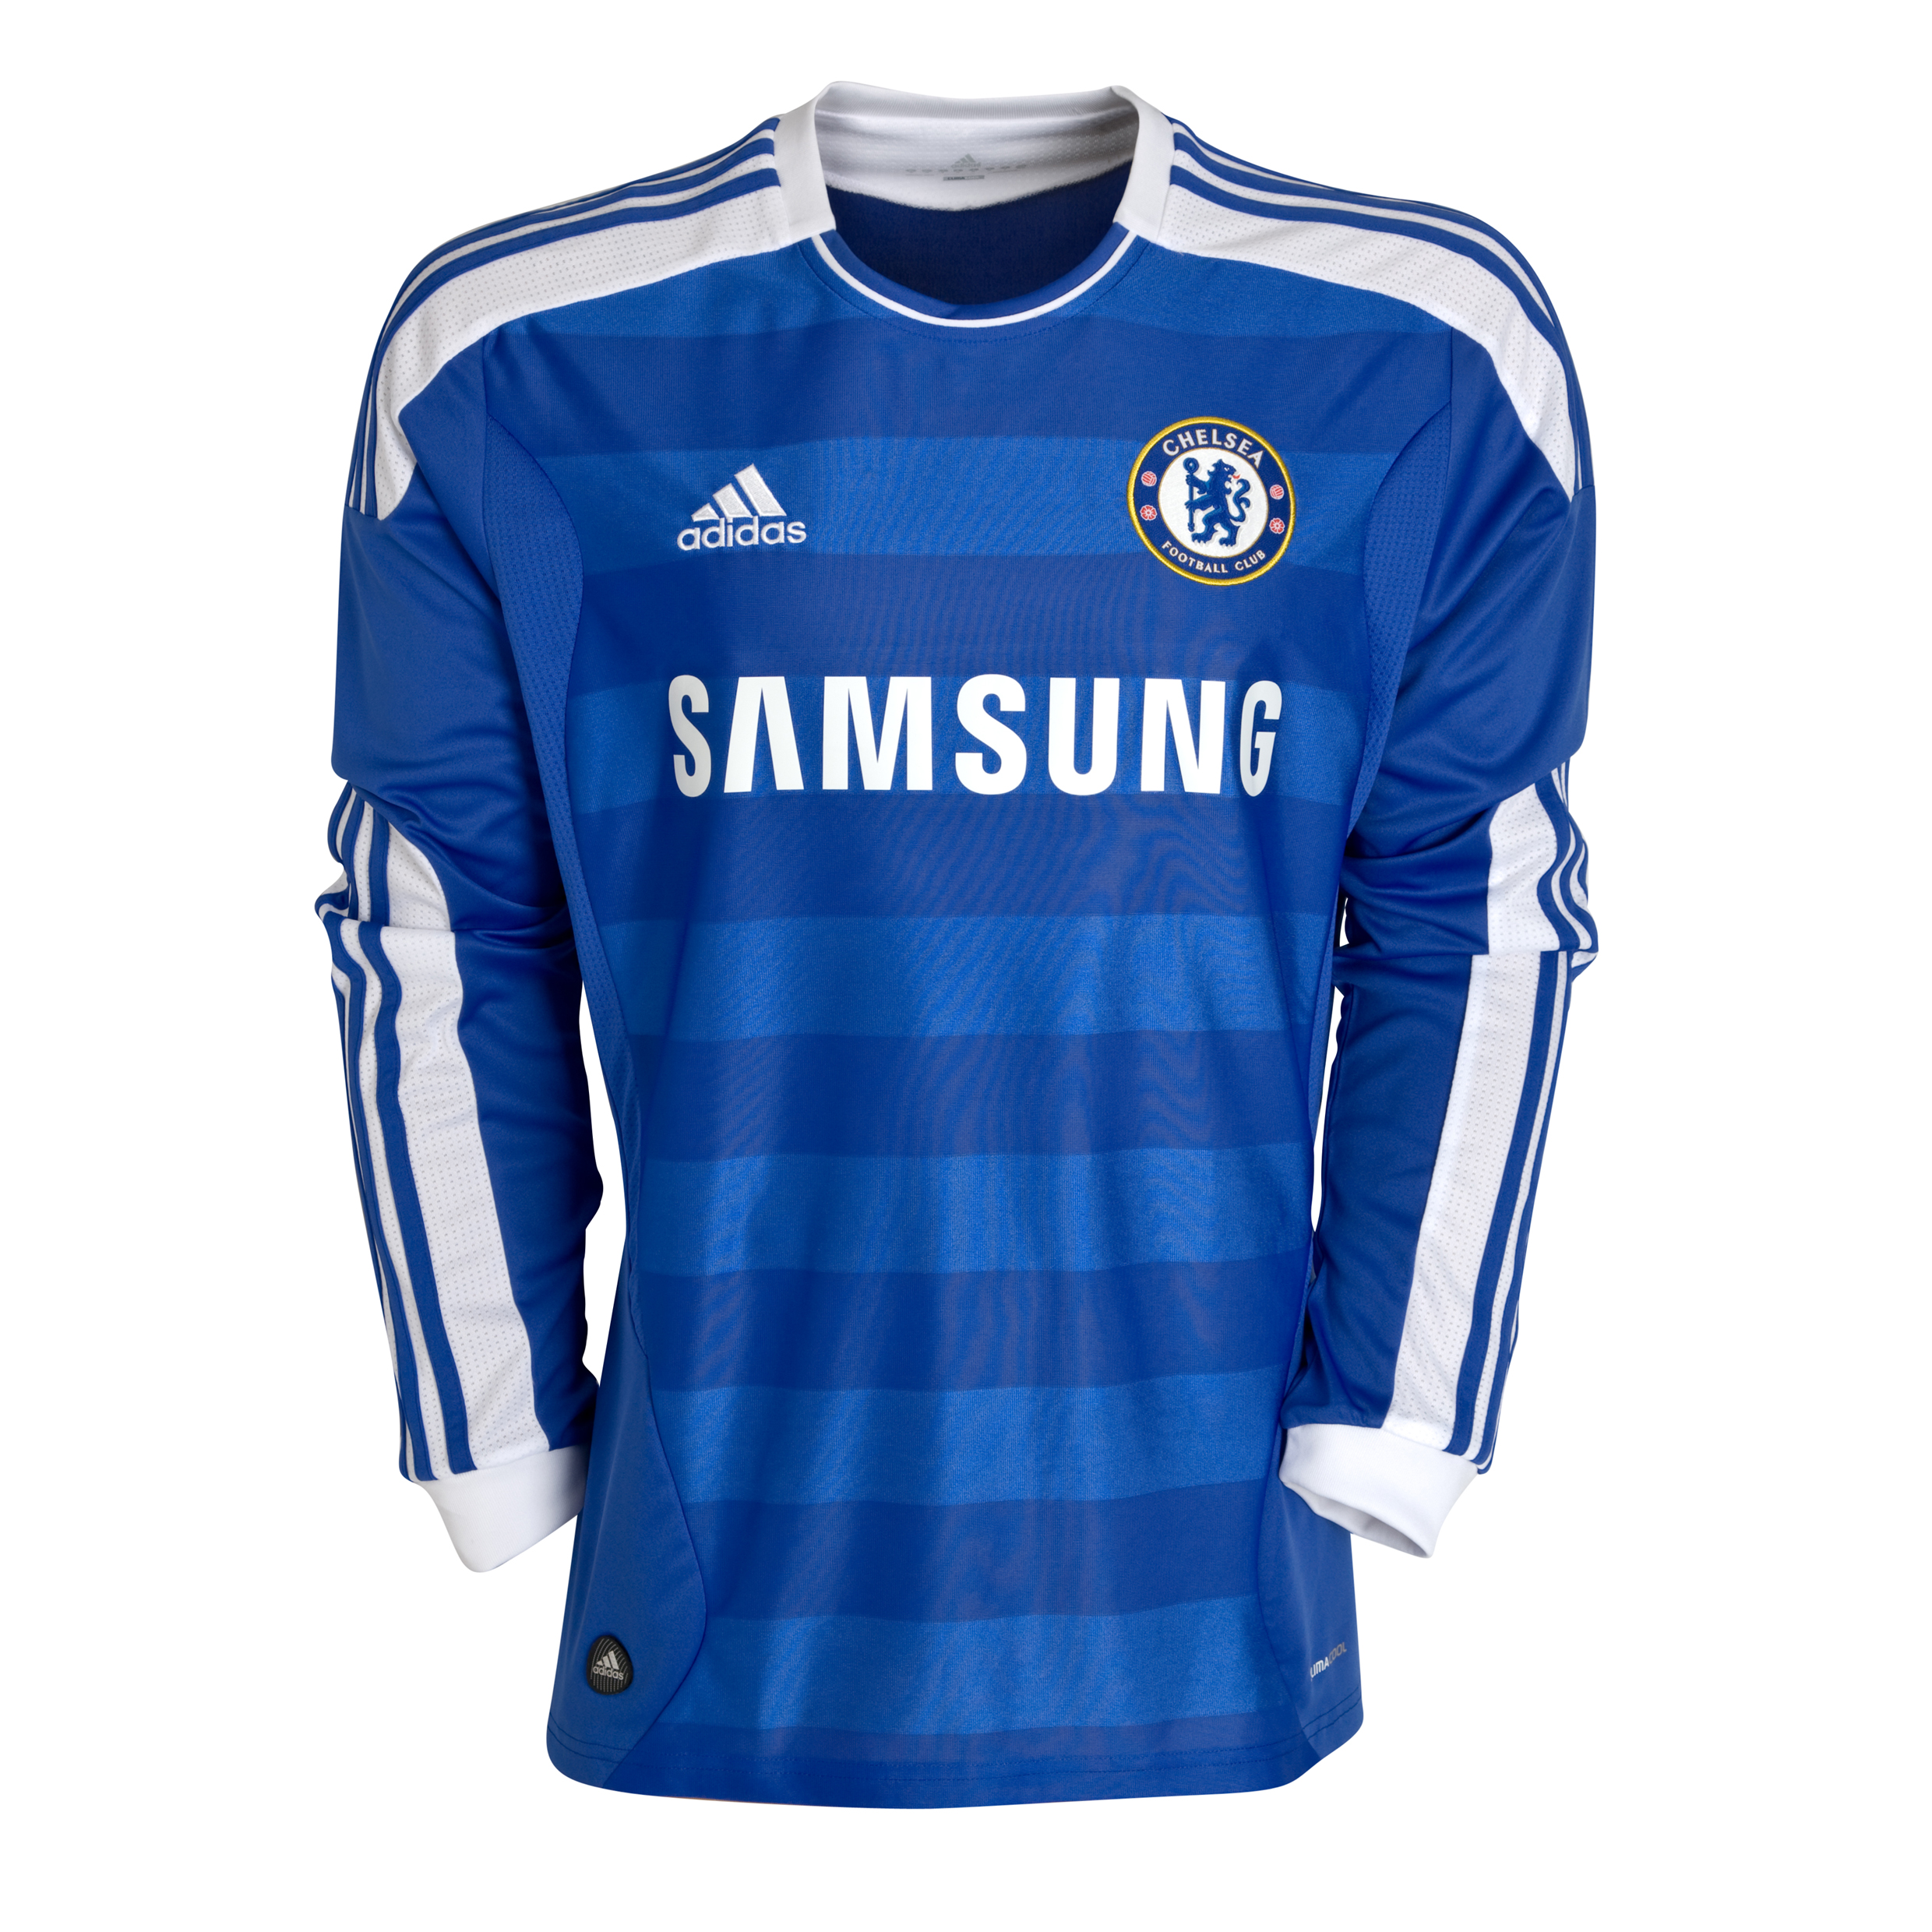 Chelsea Home Shirt 2011/12 - Long Sleeved